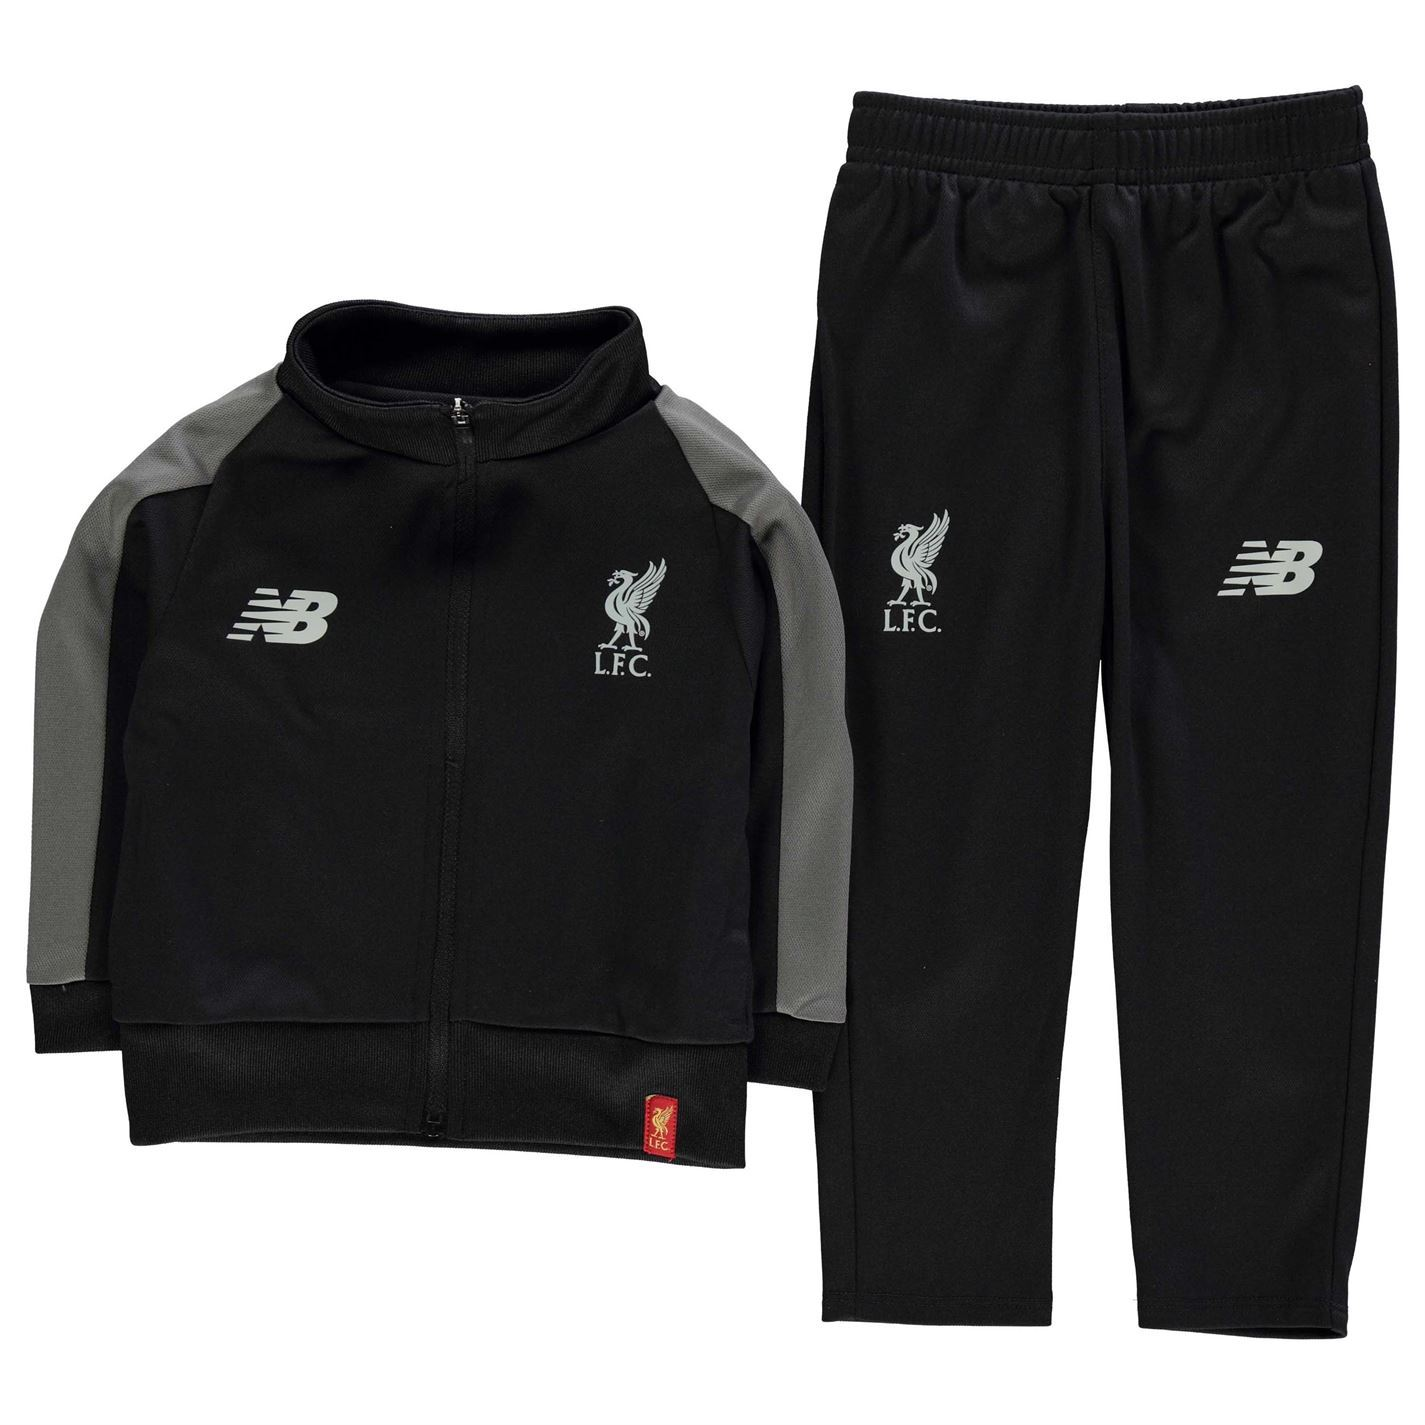 581677e73ca This Childrens New Balance Liverpool Presentation Tracksuit 2018 2019  allows your little one to show their support for The Reds in style thanks  to the club ...